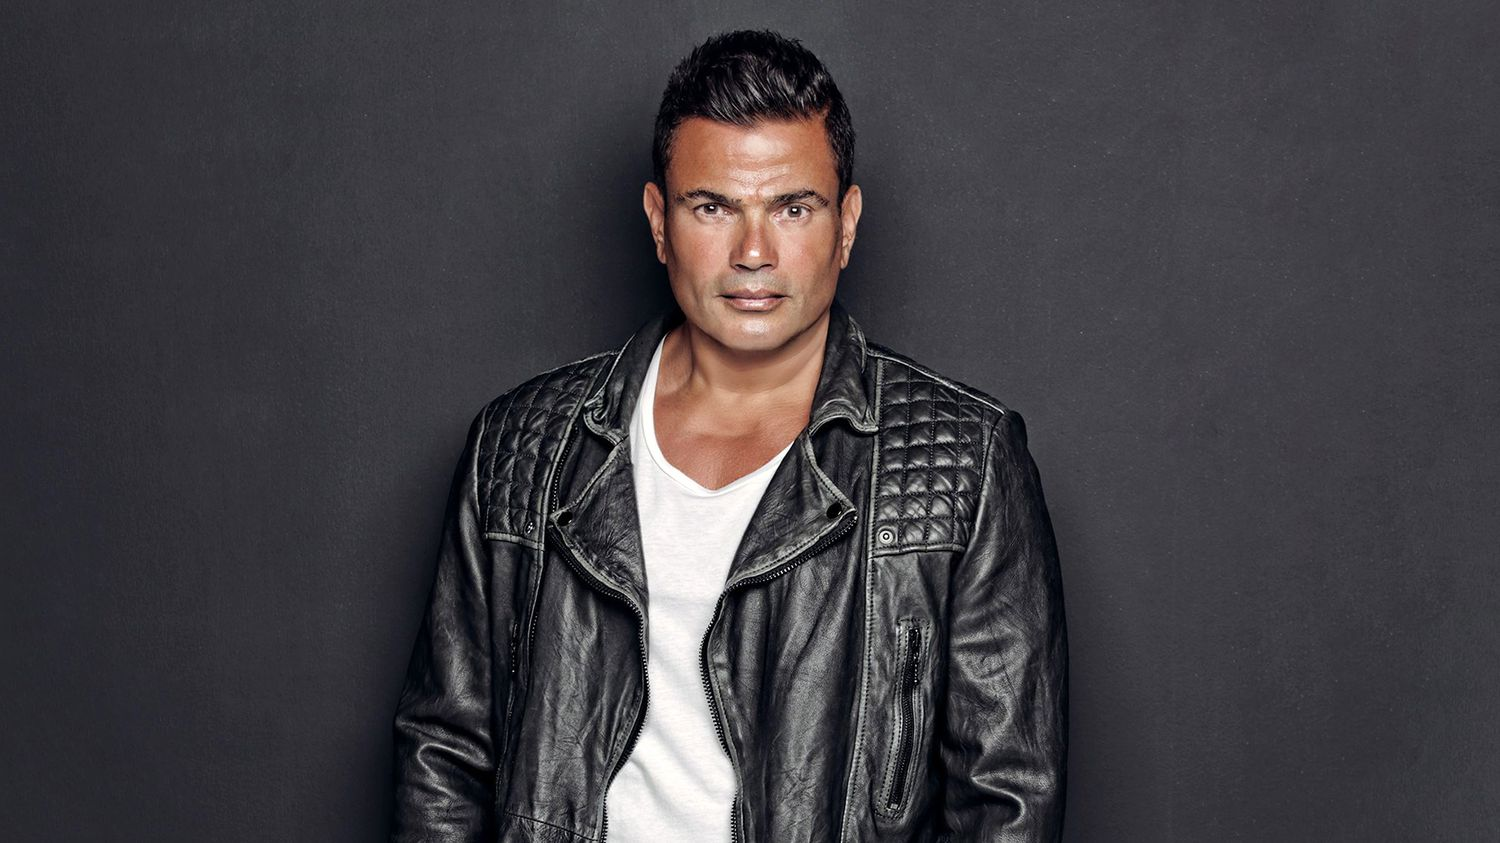 Amr Diab Photos Pictures of Amr Diab Getty Images Amr diab photo gallery